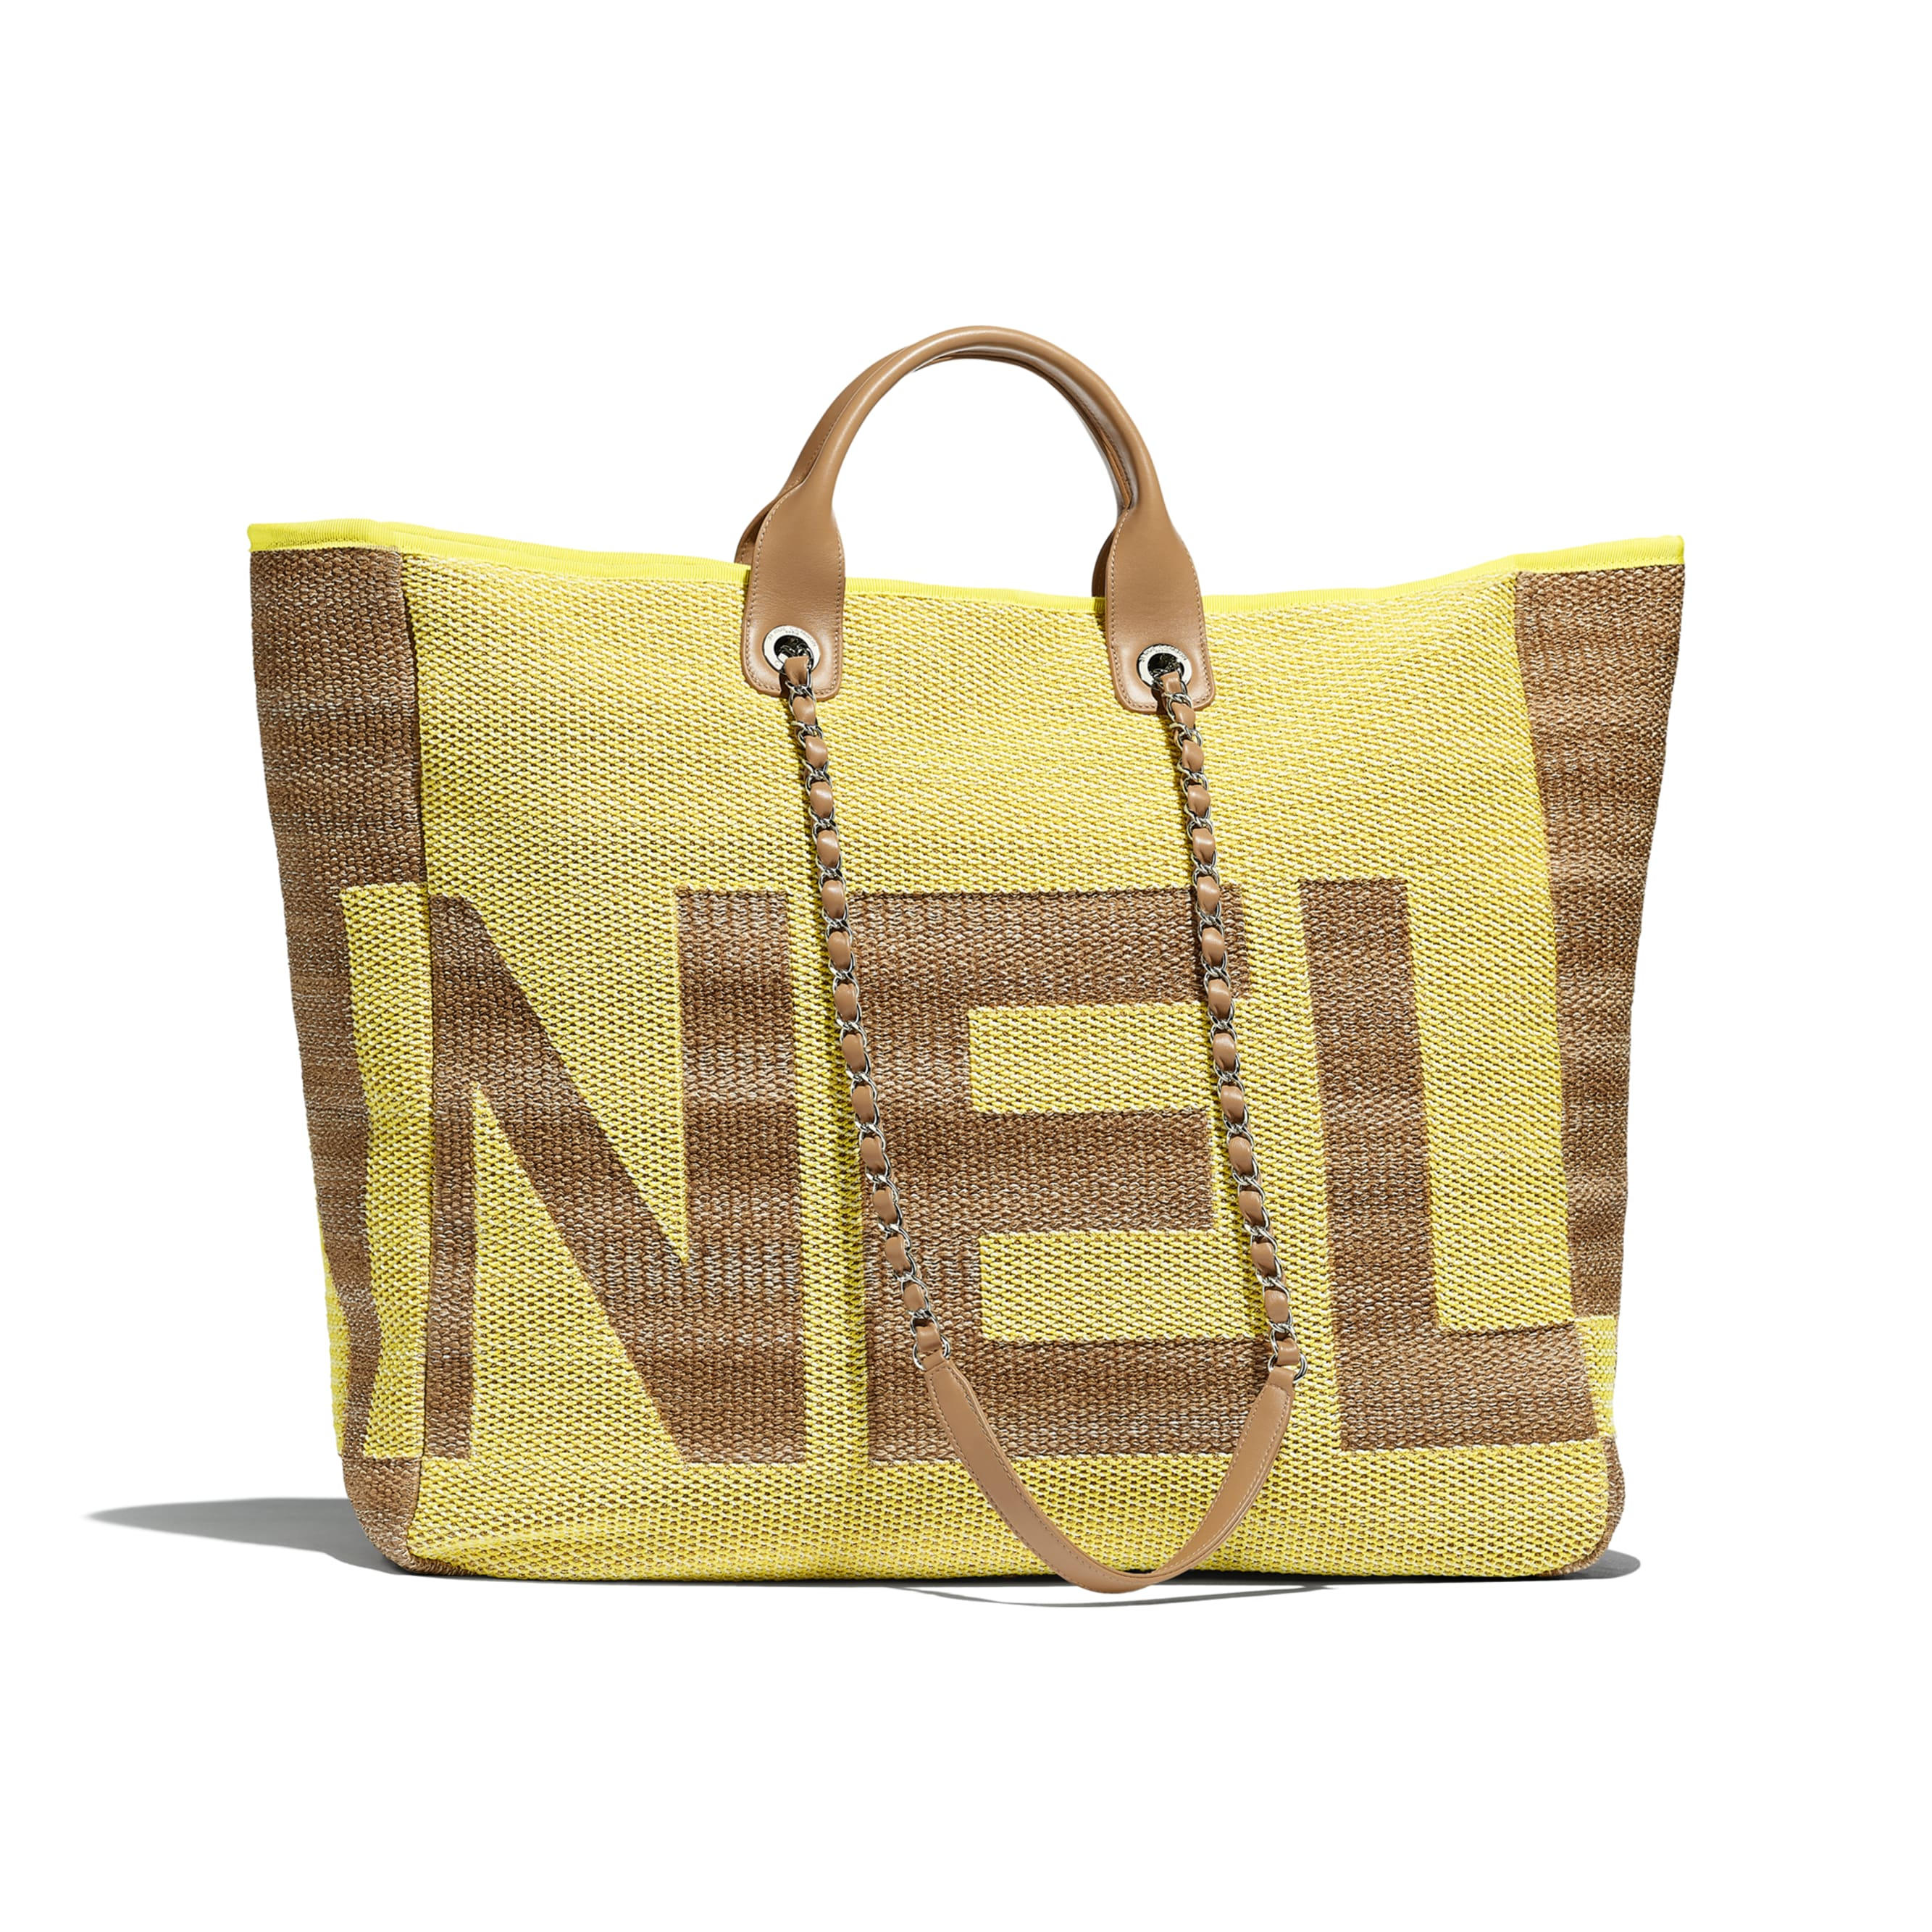 Large Shopping Bag - Yellow & Dark Beige - Mixed Fibers, Viscose, Calfskin & Silver-Tone Metal - Alternative view - see standard sized version